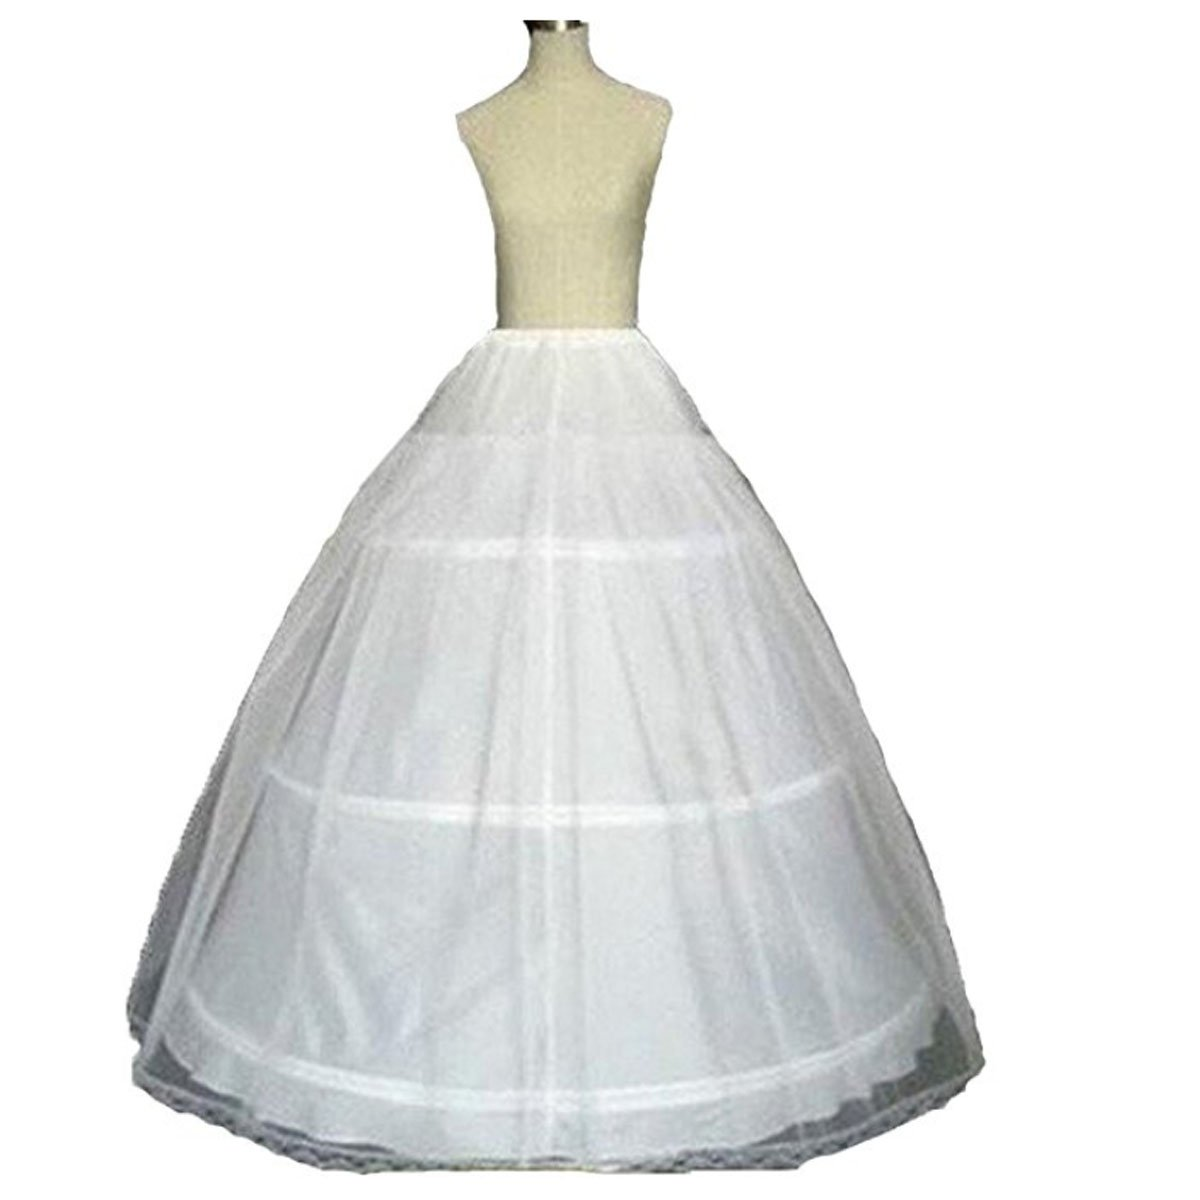 TC Bride Women's 3 Hoop Ball Gown Full Crinoline Petticoat Underskirt Slips For Wedding Dress (White, Samll)